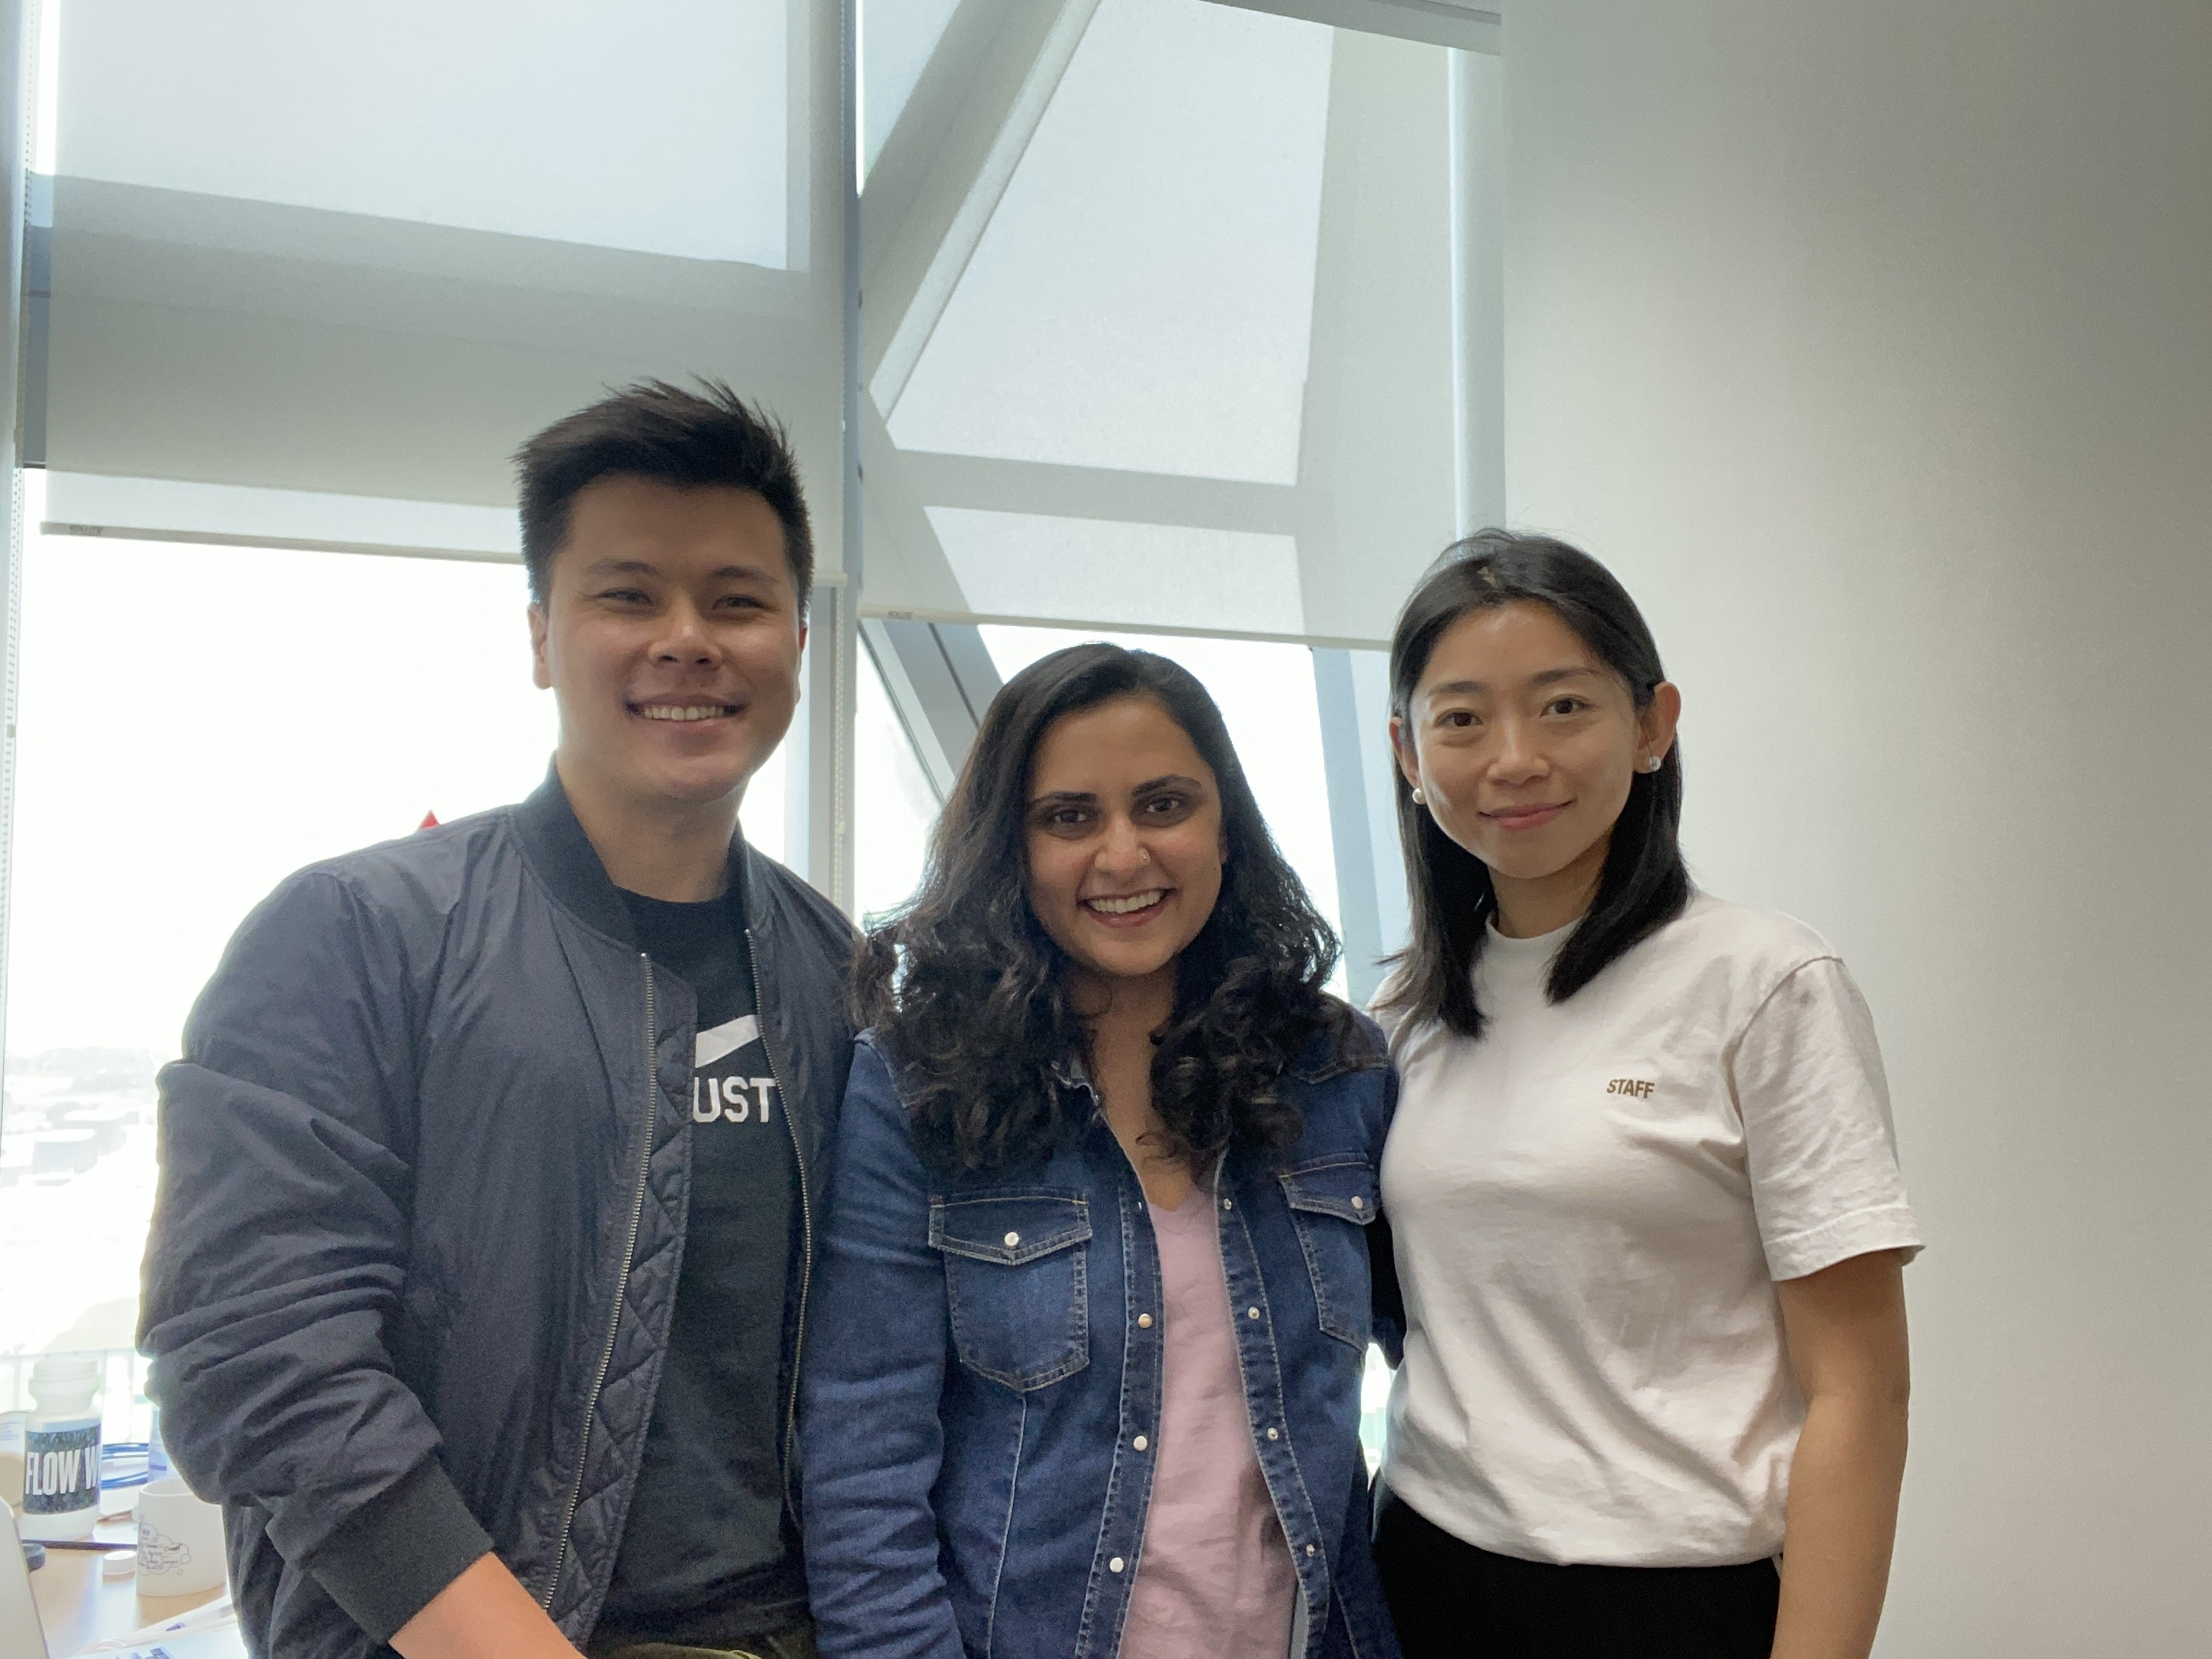 A photo of social commerce startup Raena's team. From left to right: chief operating officer Guo Xing Lim, chief executive officer Sreejita Deb and chief commercial officer Widelia Liu